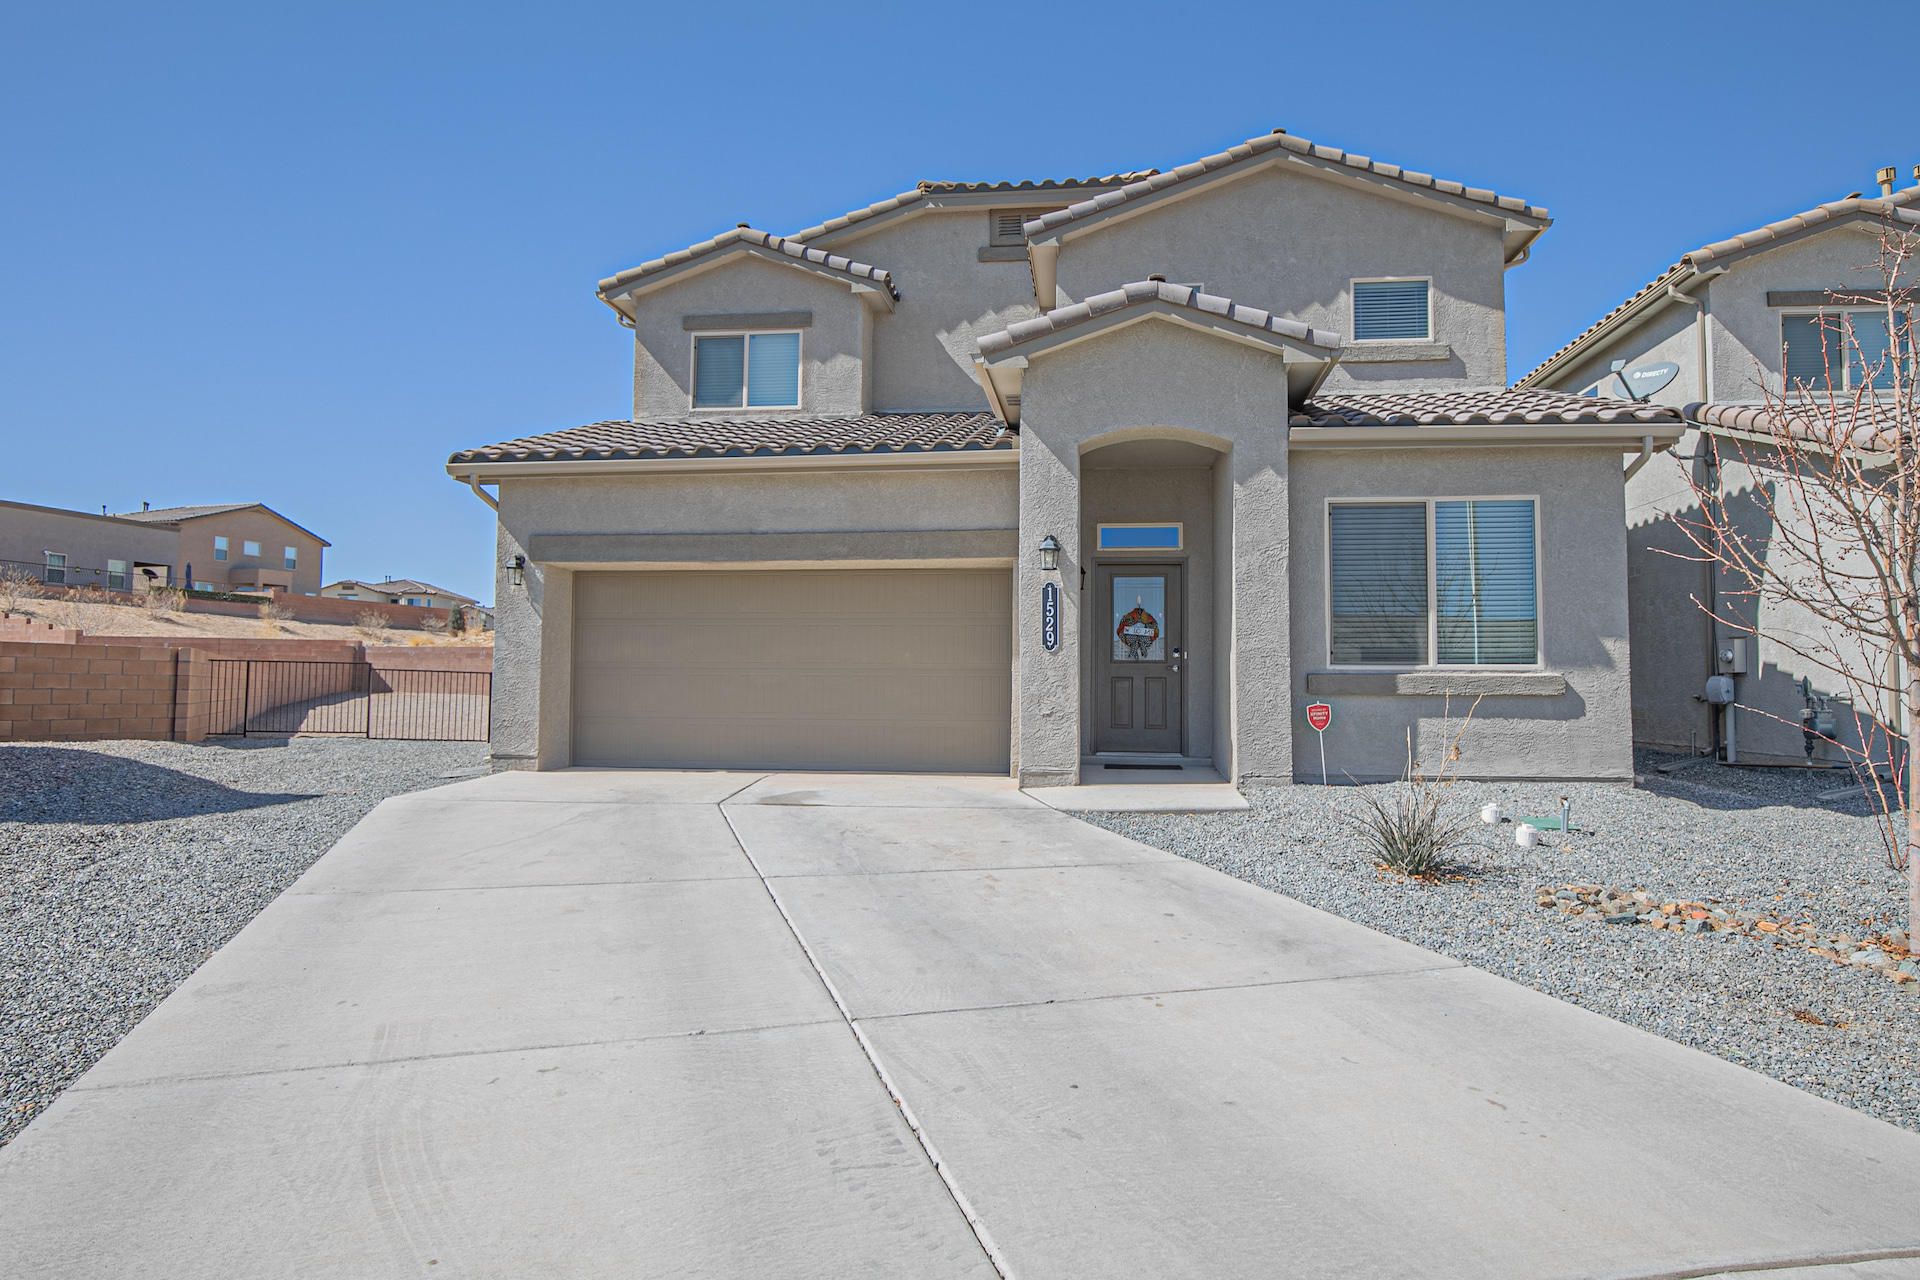 Beautiful, immaculate home on a quiet cul-de-sac near Los Lunas High School, close to shopping and restaurants. You won't be disappointed when you see this 4 bedroom 4 bath home. This home welcomes you with beautiful tile floors, granite counter tops and stainless steel appliances. The open floor plan is perfect for entertaining. Now that it's getting warmer, take your guests out on the covered patio and enjoy the firepit in the evenings. Master bedroom is on the main floor with a second master upstairs along with 2 other bedrooms, full bath and the second living area in the loft.  Large xeriscape yard is completely fenced with back yard access. There are walking trails all around this highly sought after area. Make your appointment today.